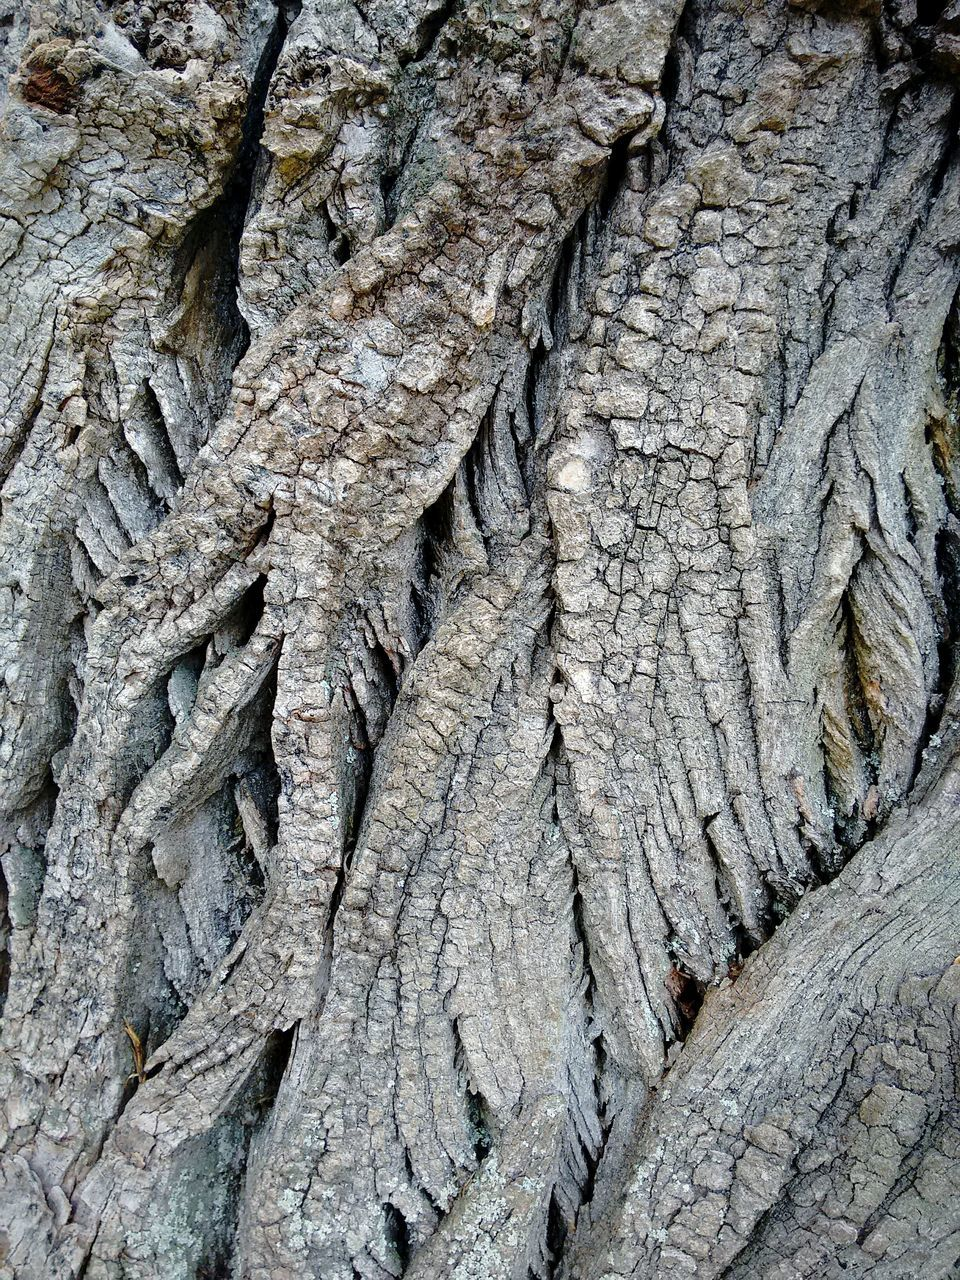 textured, rough, full frame, close-up, cracked, no people, nature, outdoors, day, bark, backgrounds, tree trunk, tree, pattern